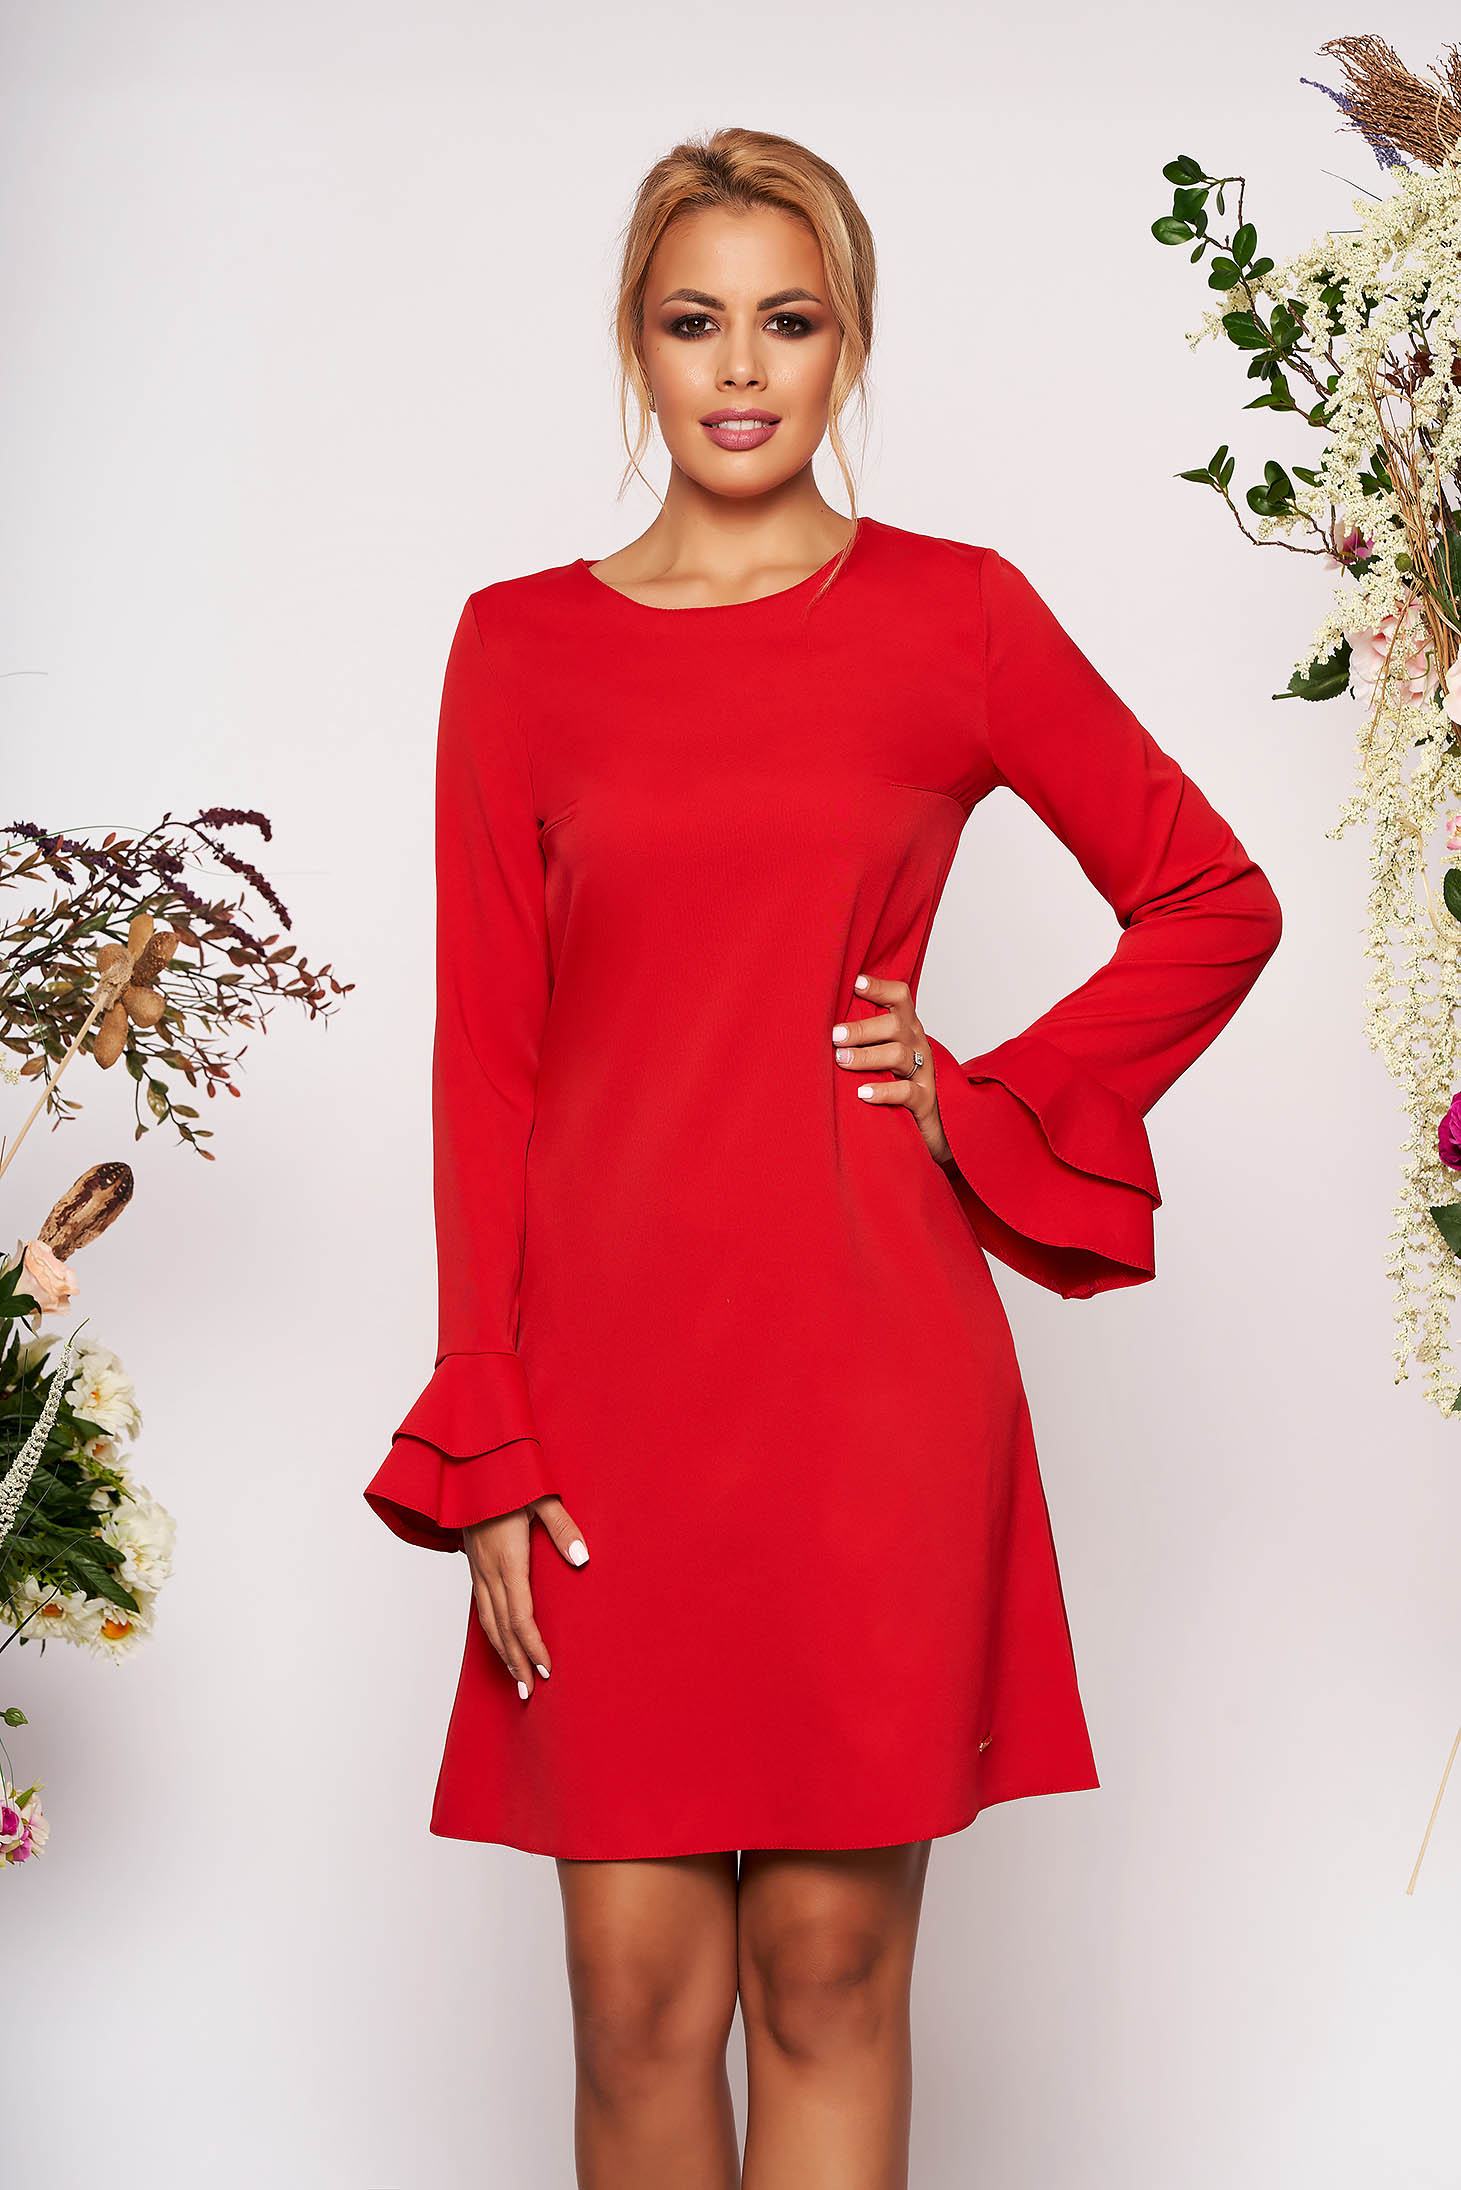 Red dress elegant short cut a-line with pockets neckline long sleeved with bell sleeve